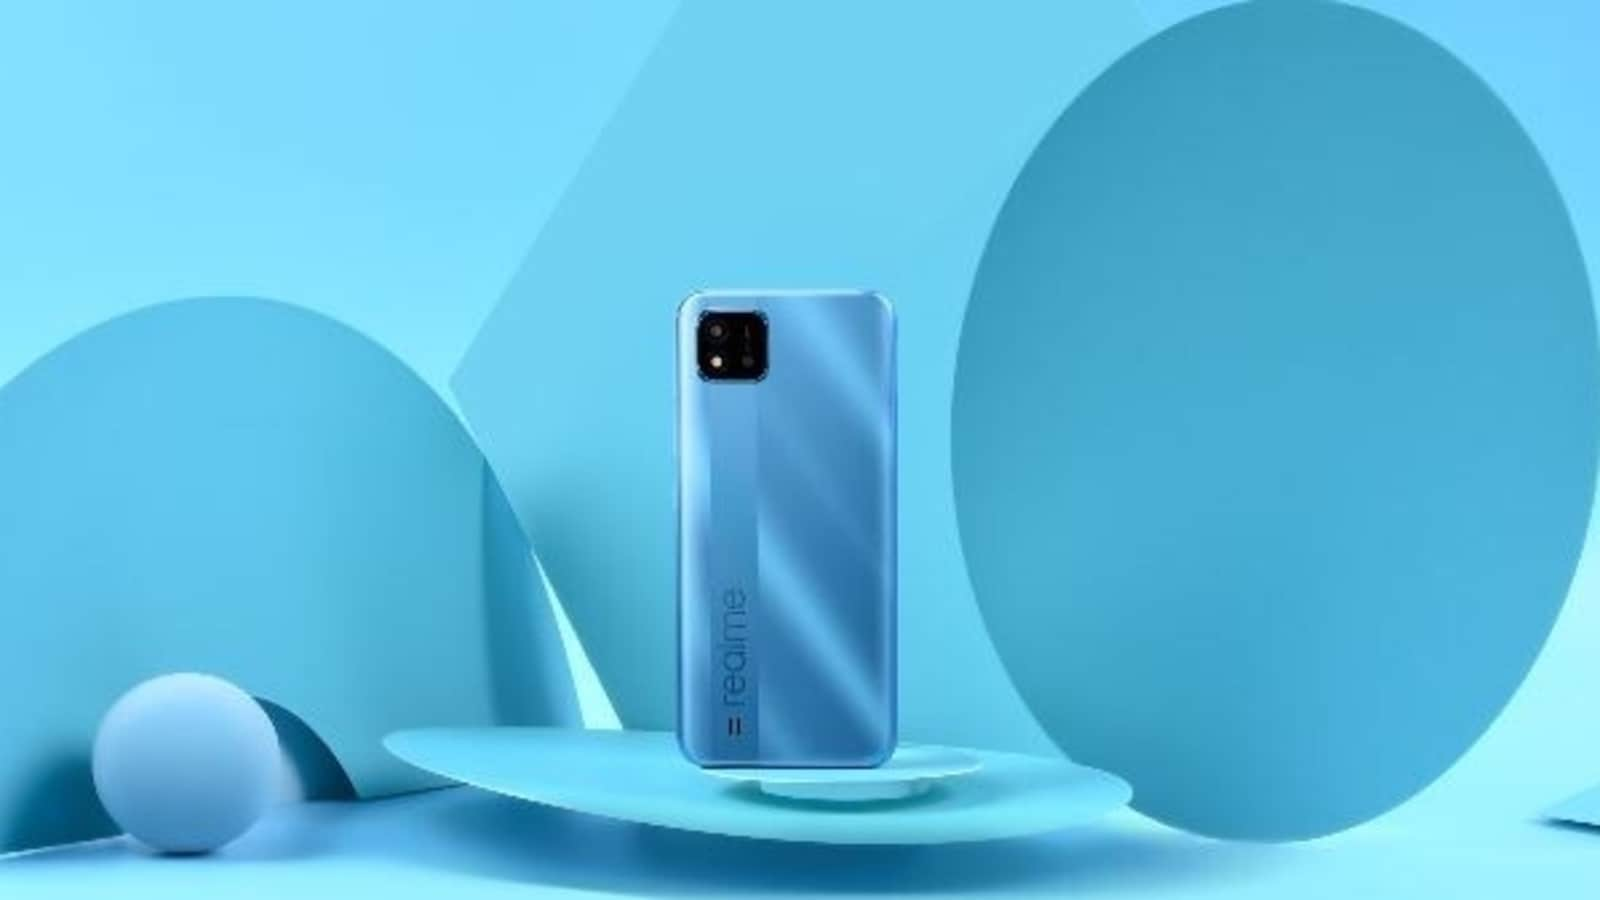 Realme C11 2021 was launched in India;  It will take on Tecno Spark Go 2021, Lava Z2 Max and Tecno Spark 7